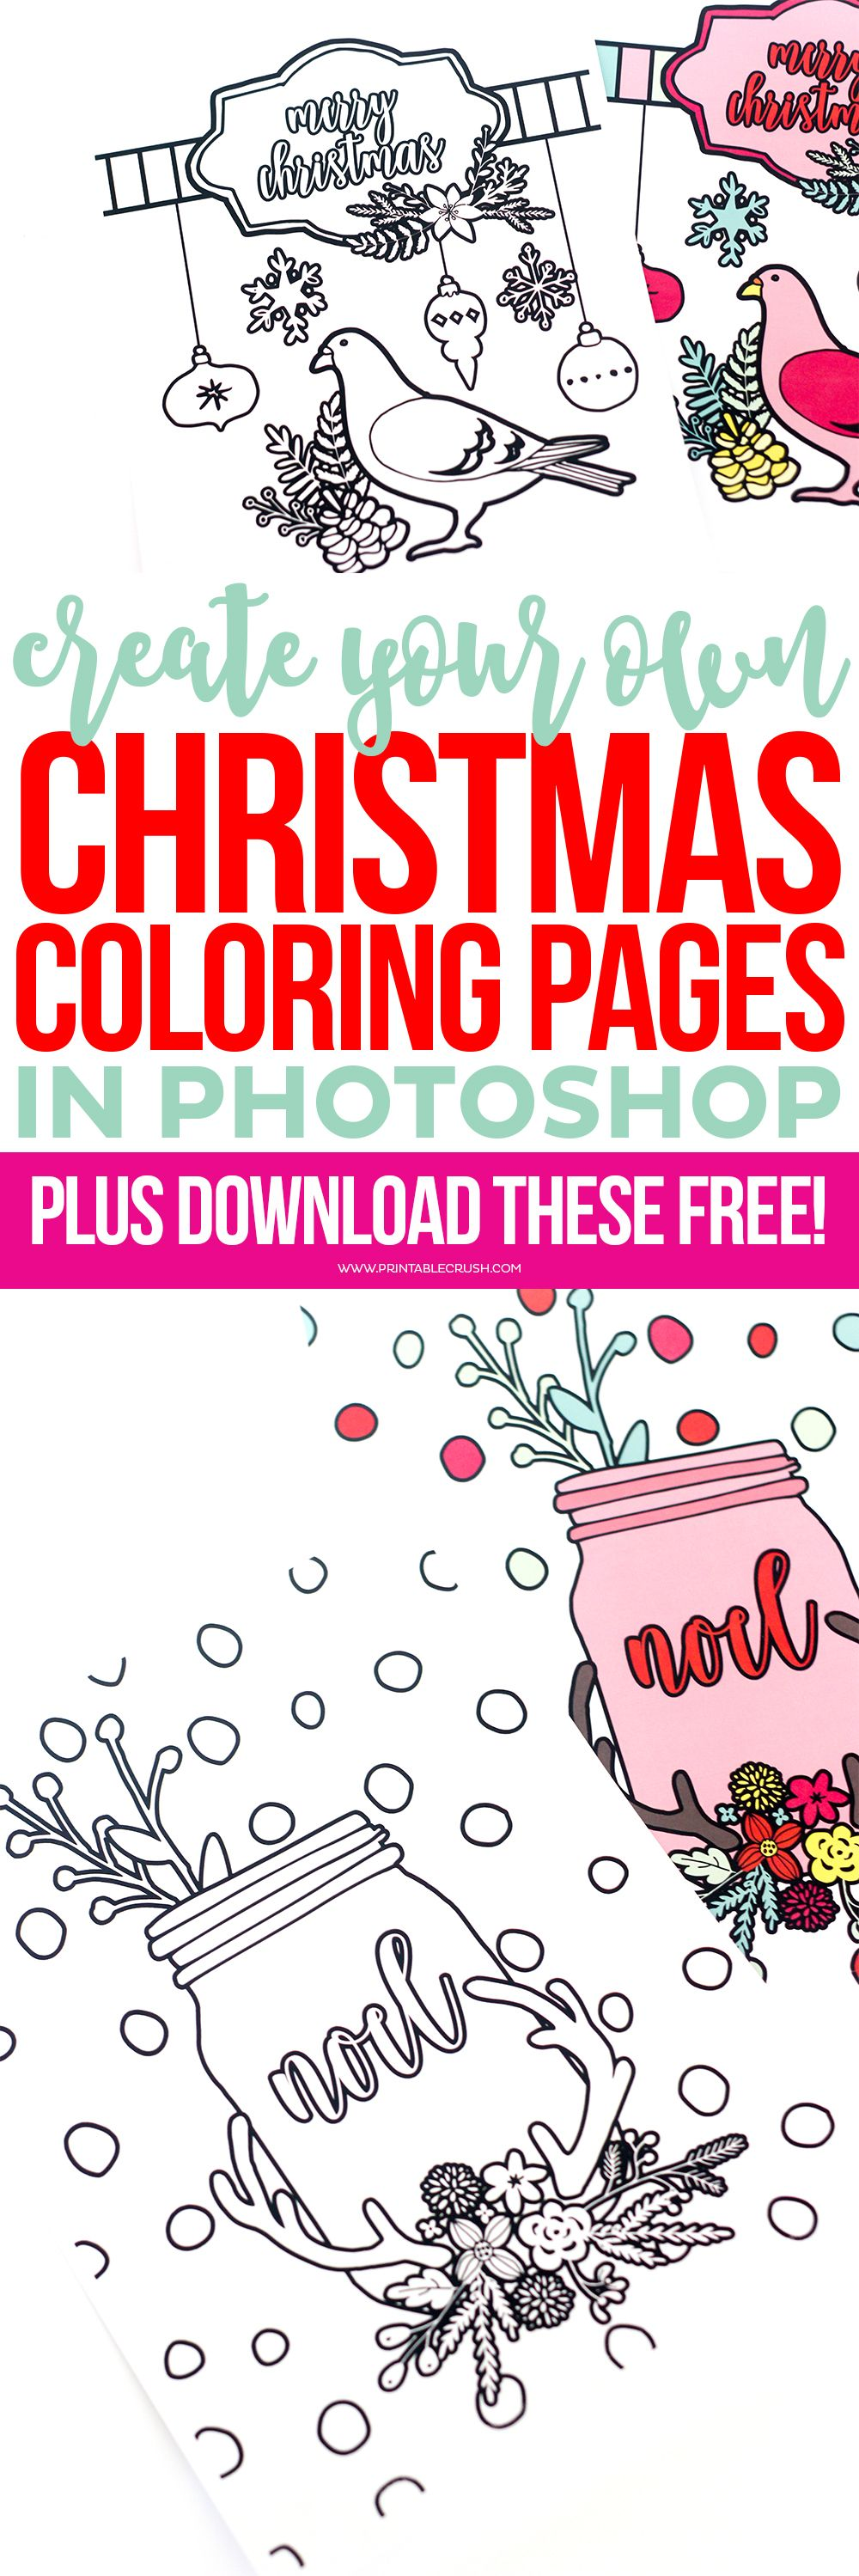 Learn to Create Christmas Coloring Pages in Photoshop | Photoshop ...